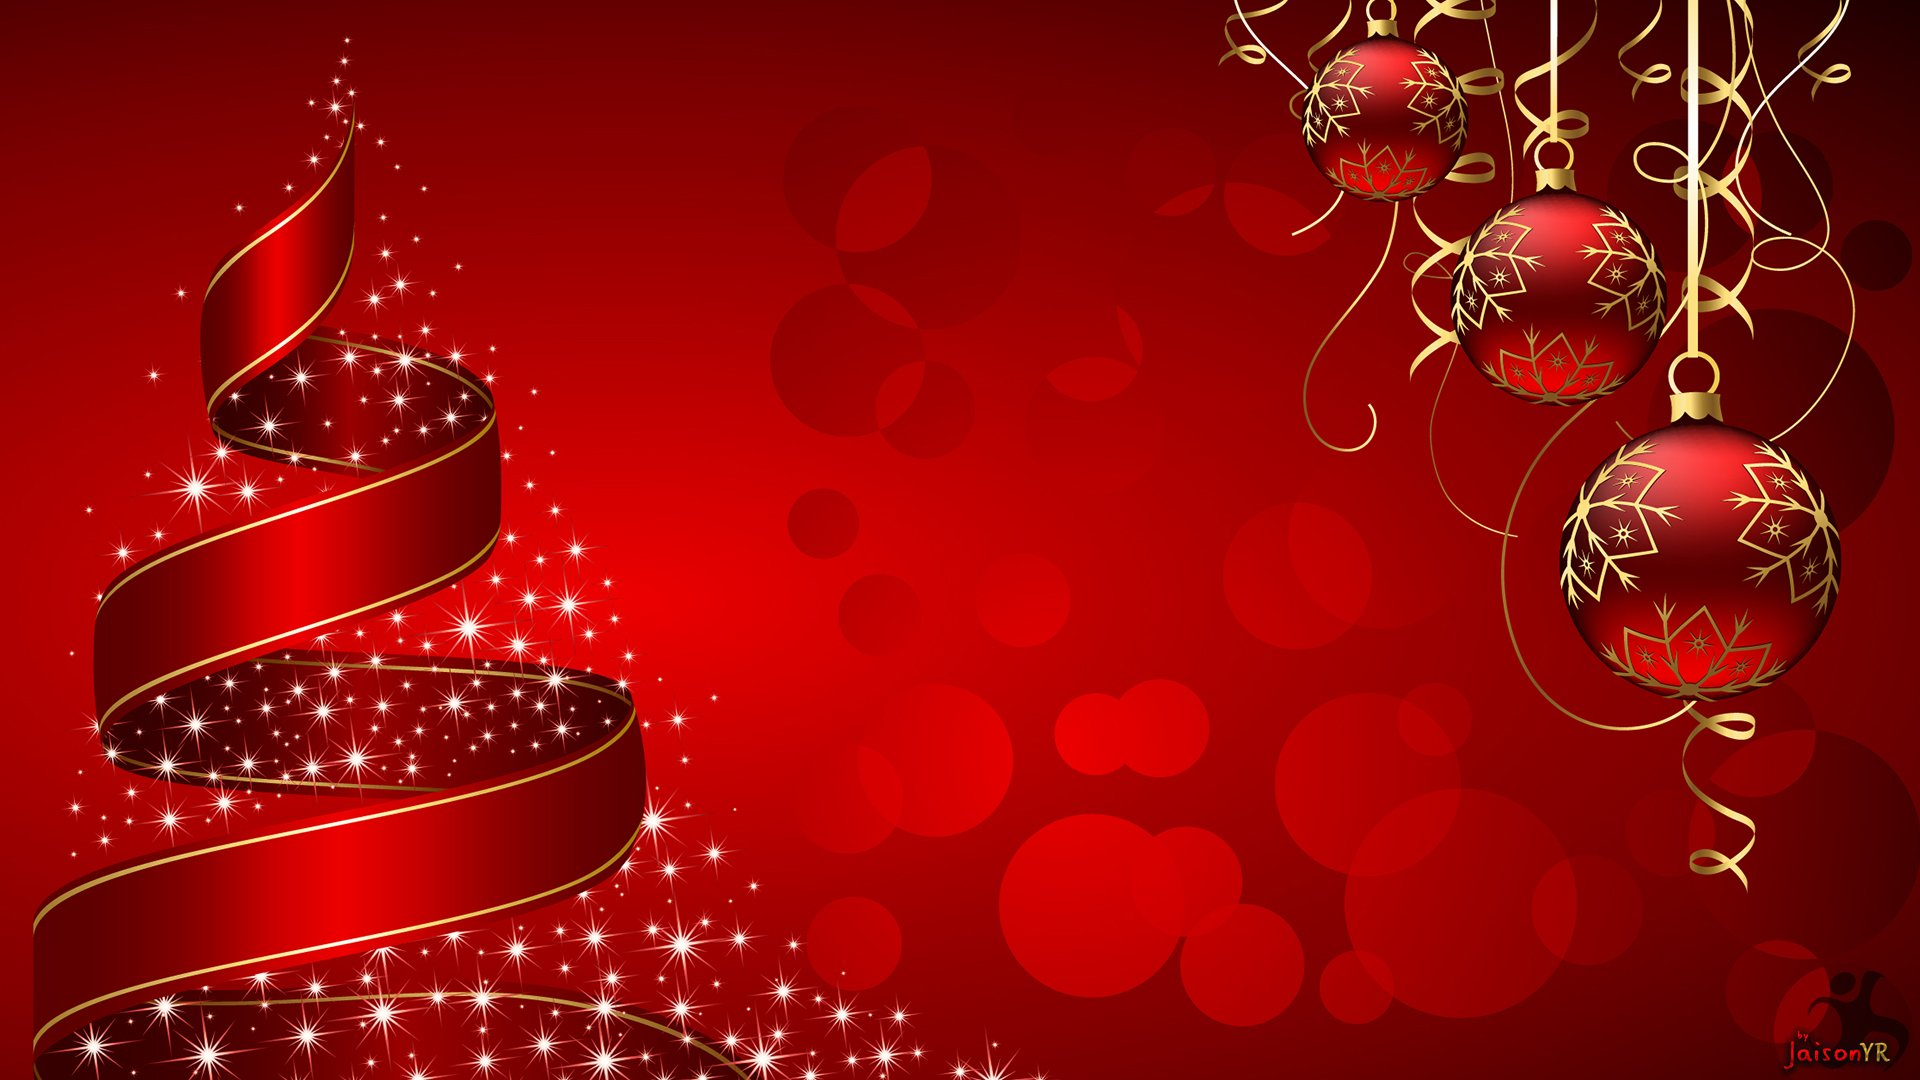 Xmas background images - Christmas Background Pictures